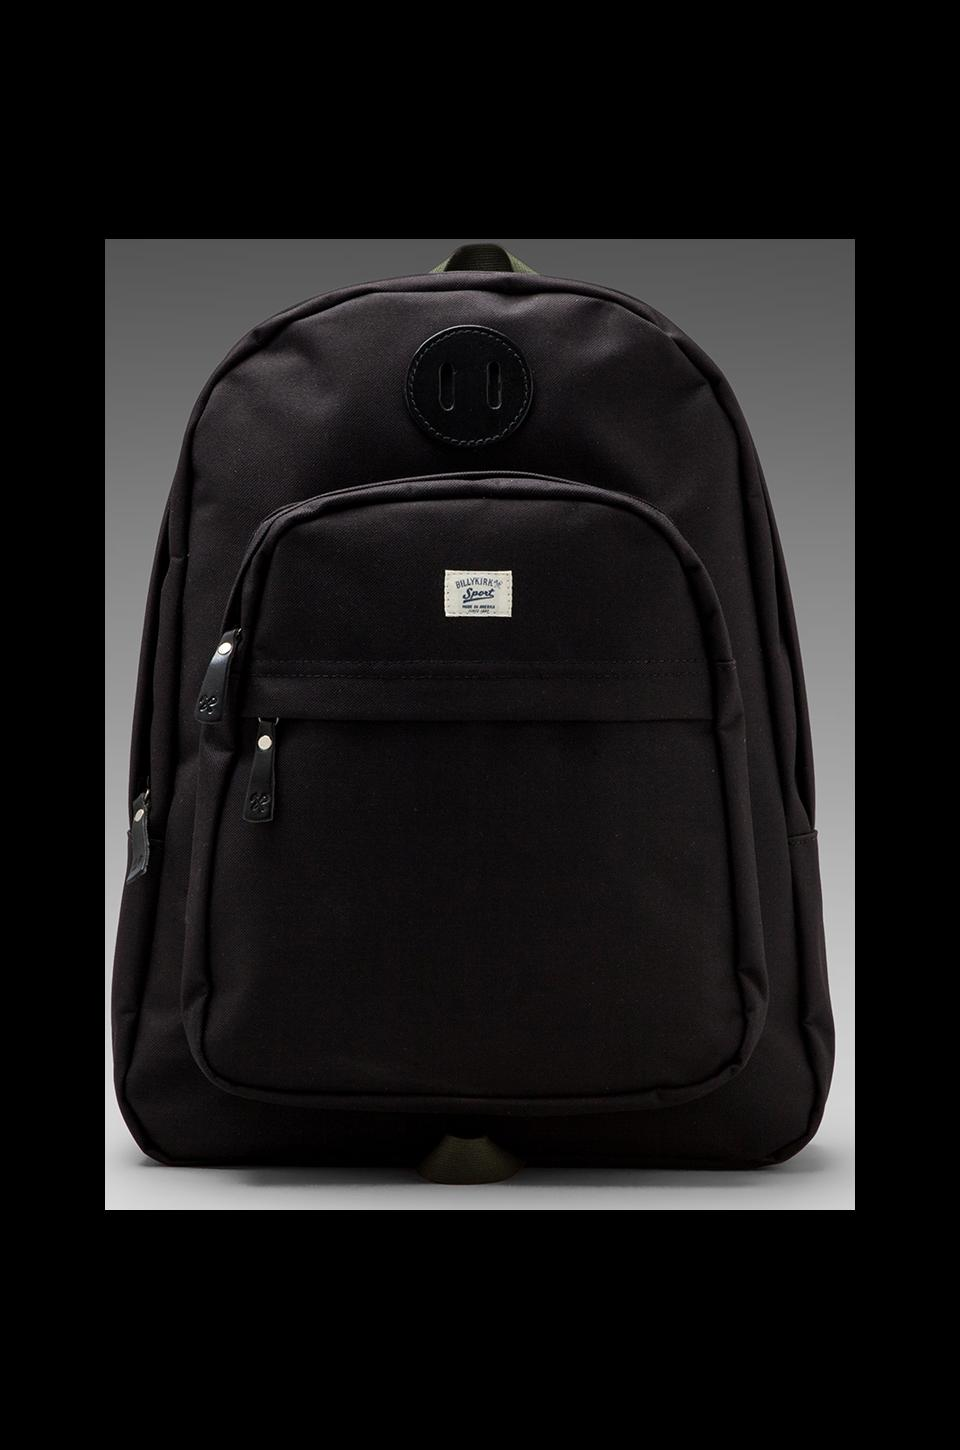 Billykirk No. 297 Zipper Top Backpack in Black/ Olive Sport